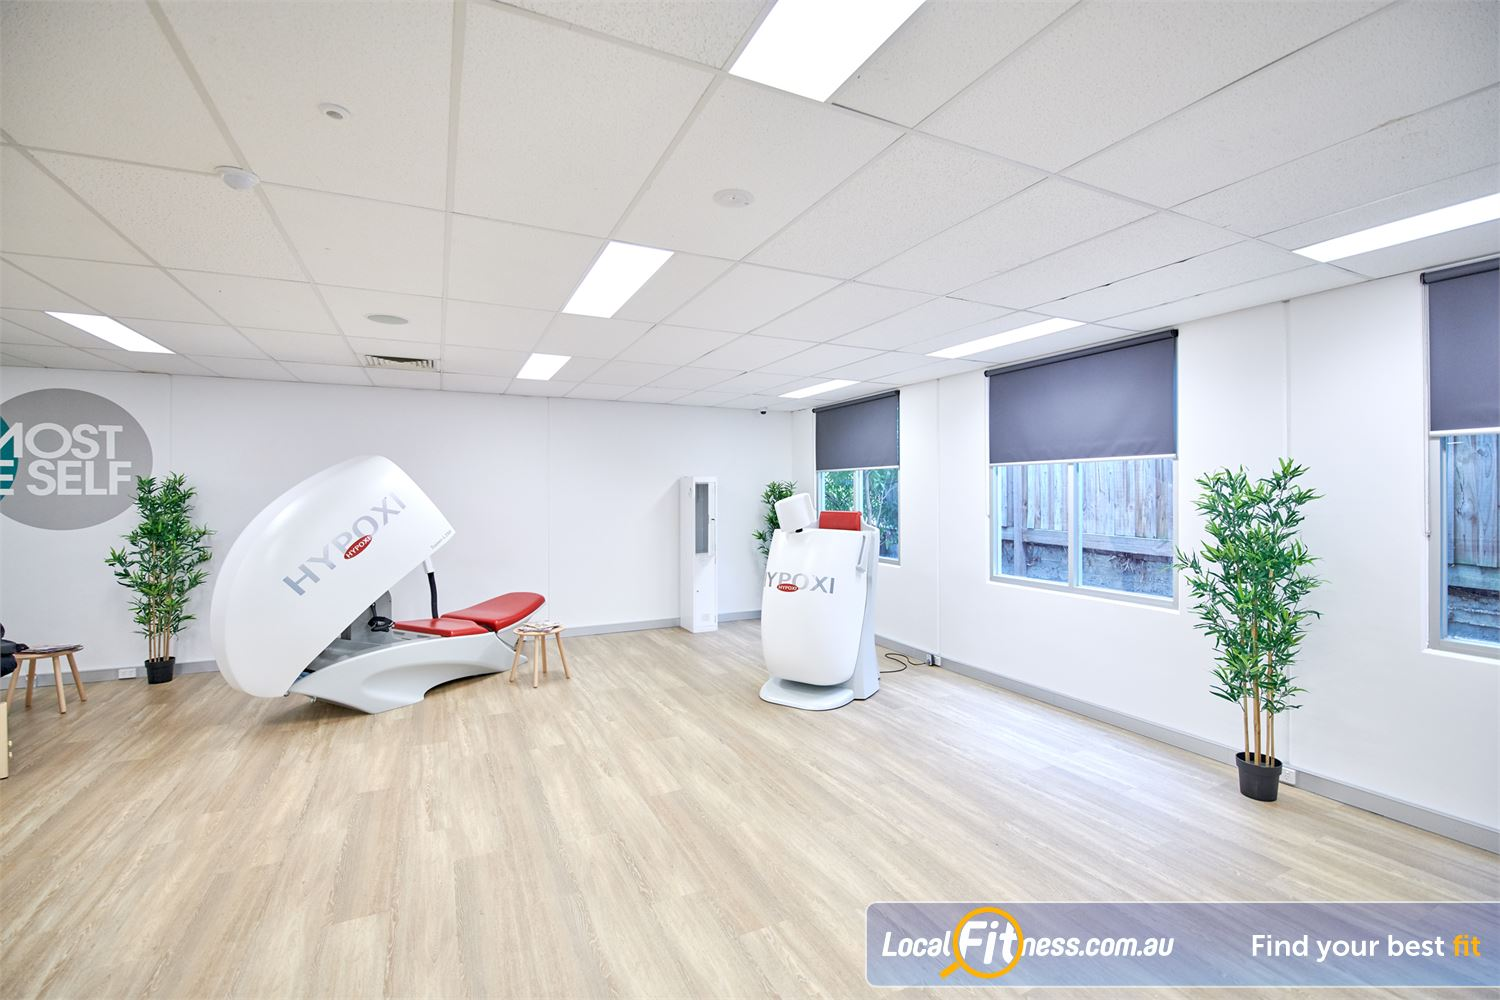 HYPOXI Weight Loss Near Glen Iris Our advanced technology provides targeted fat loss in Camberwell.